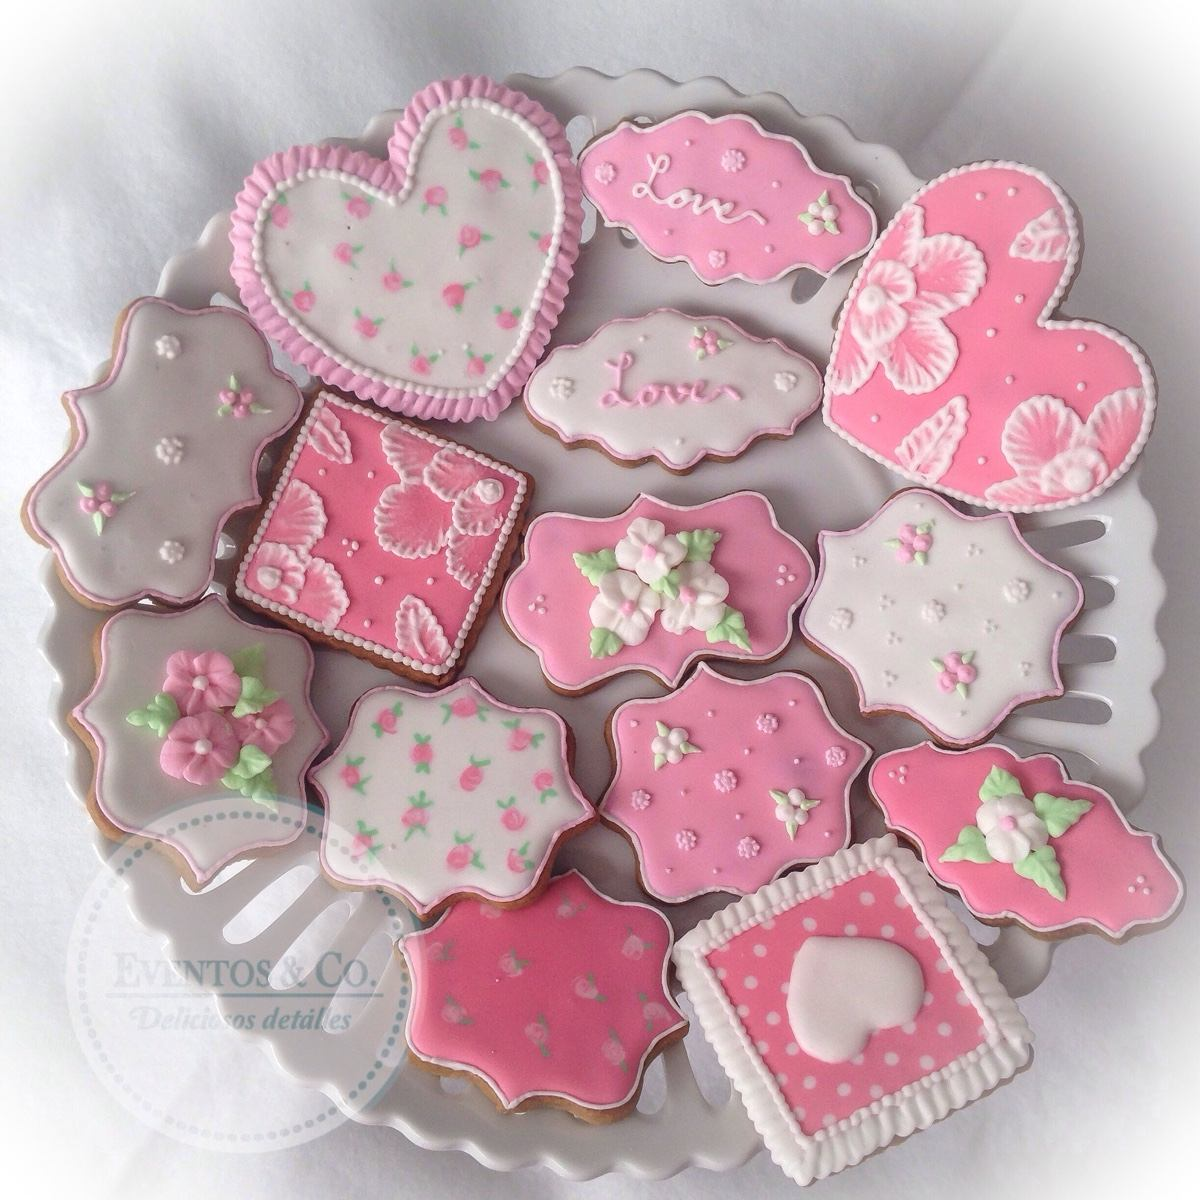 Galletas Decoradas Mesa De Dulces Recuerdos Baby Shower